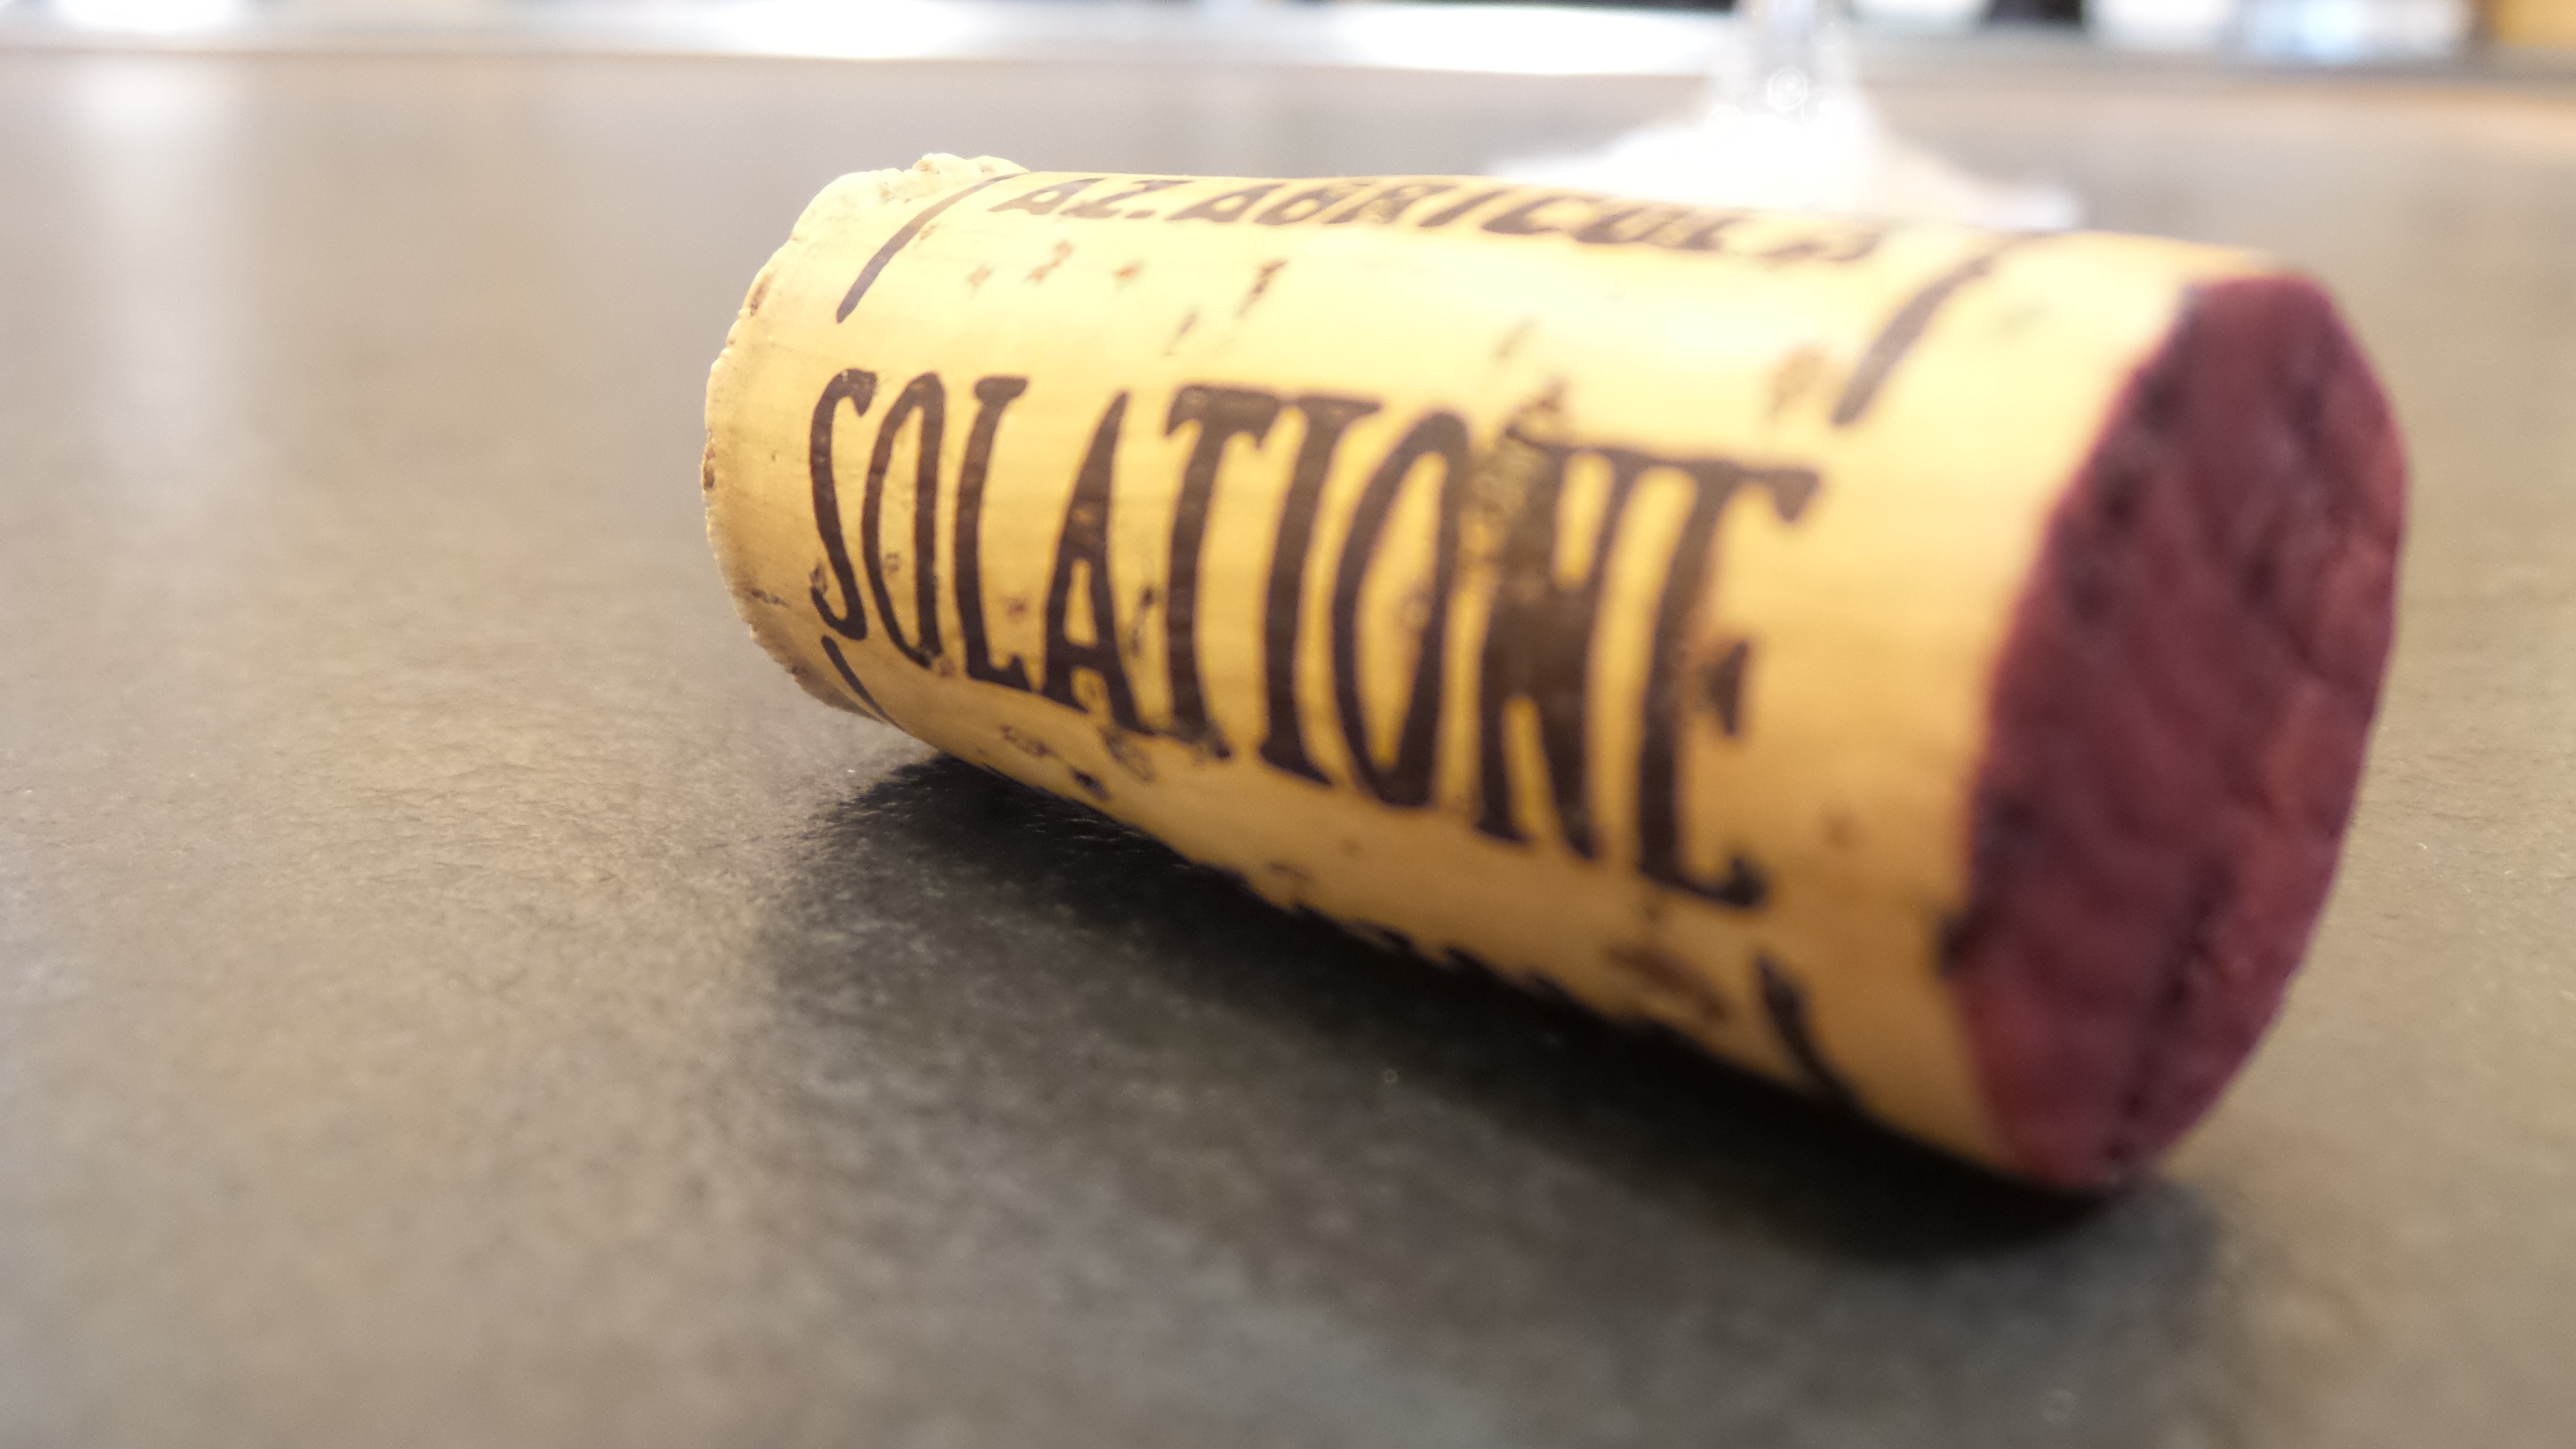 Solatione Winery